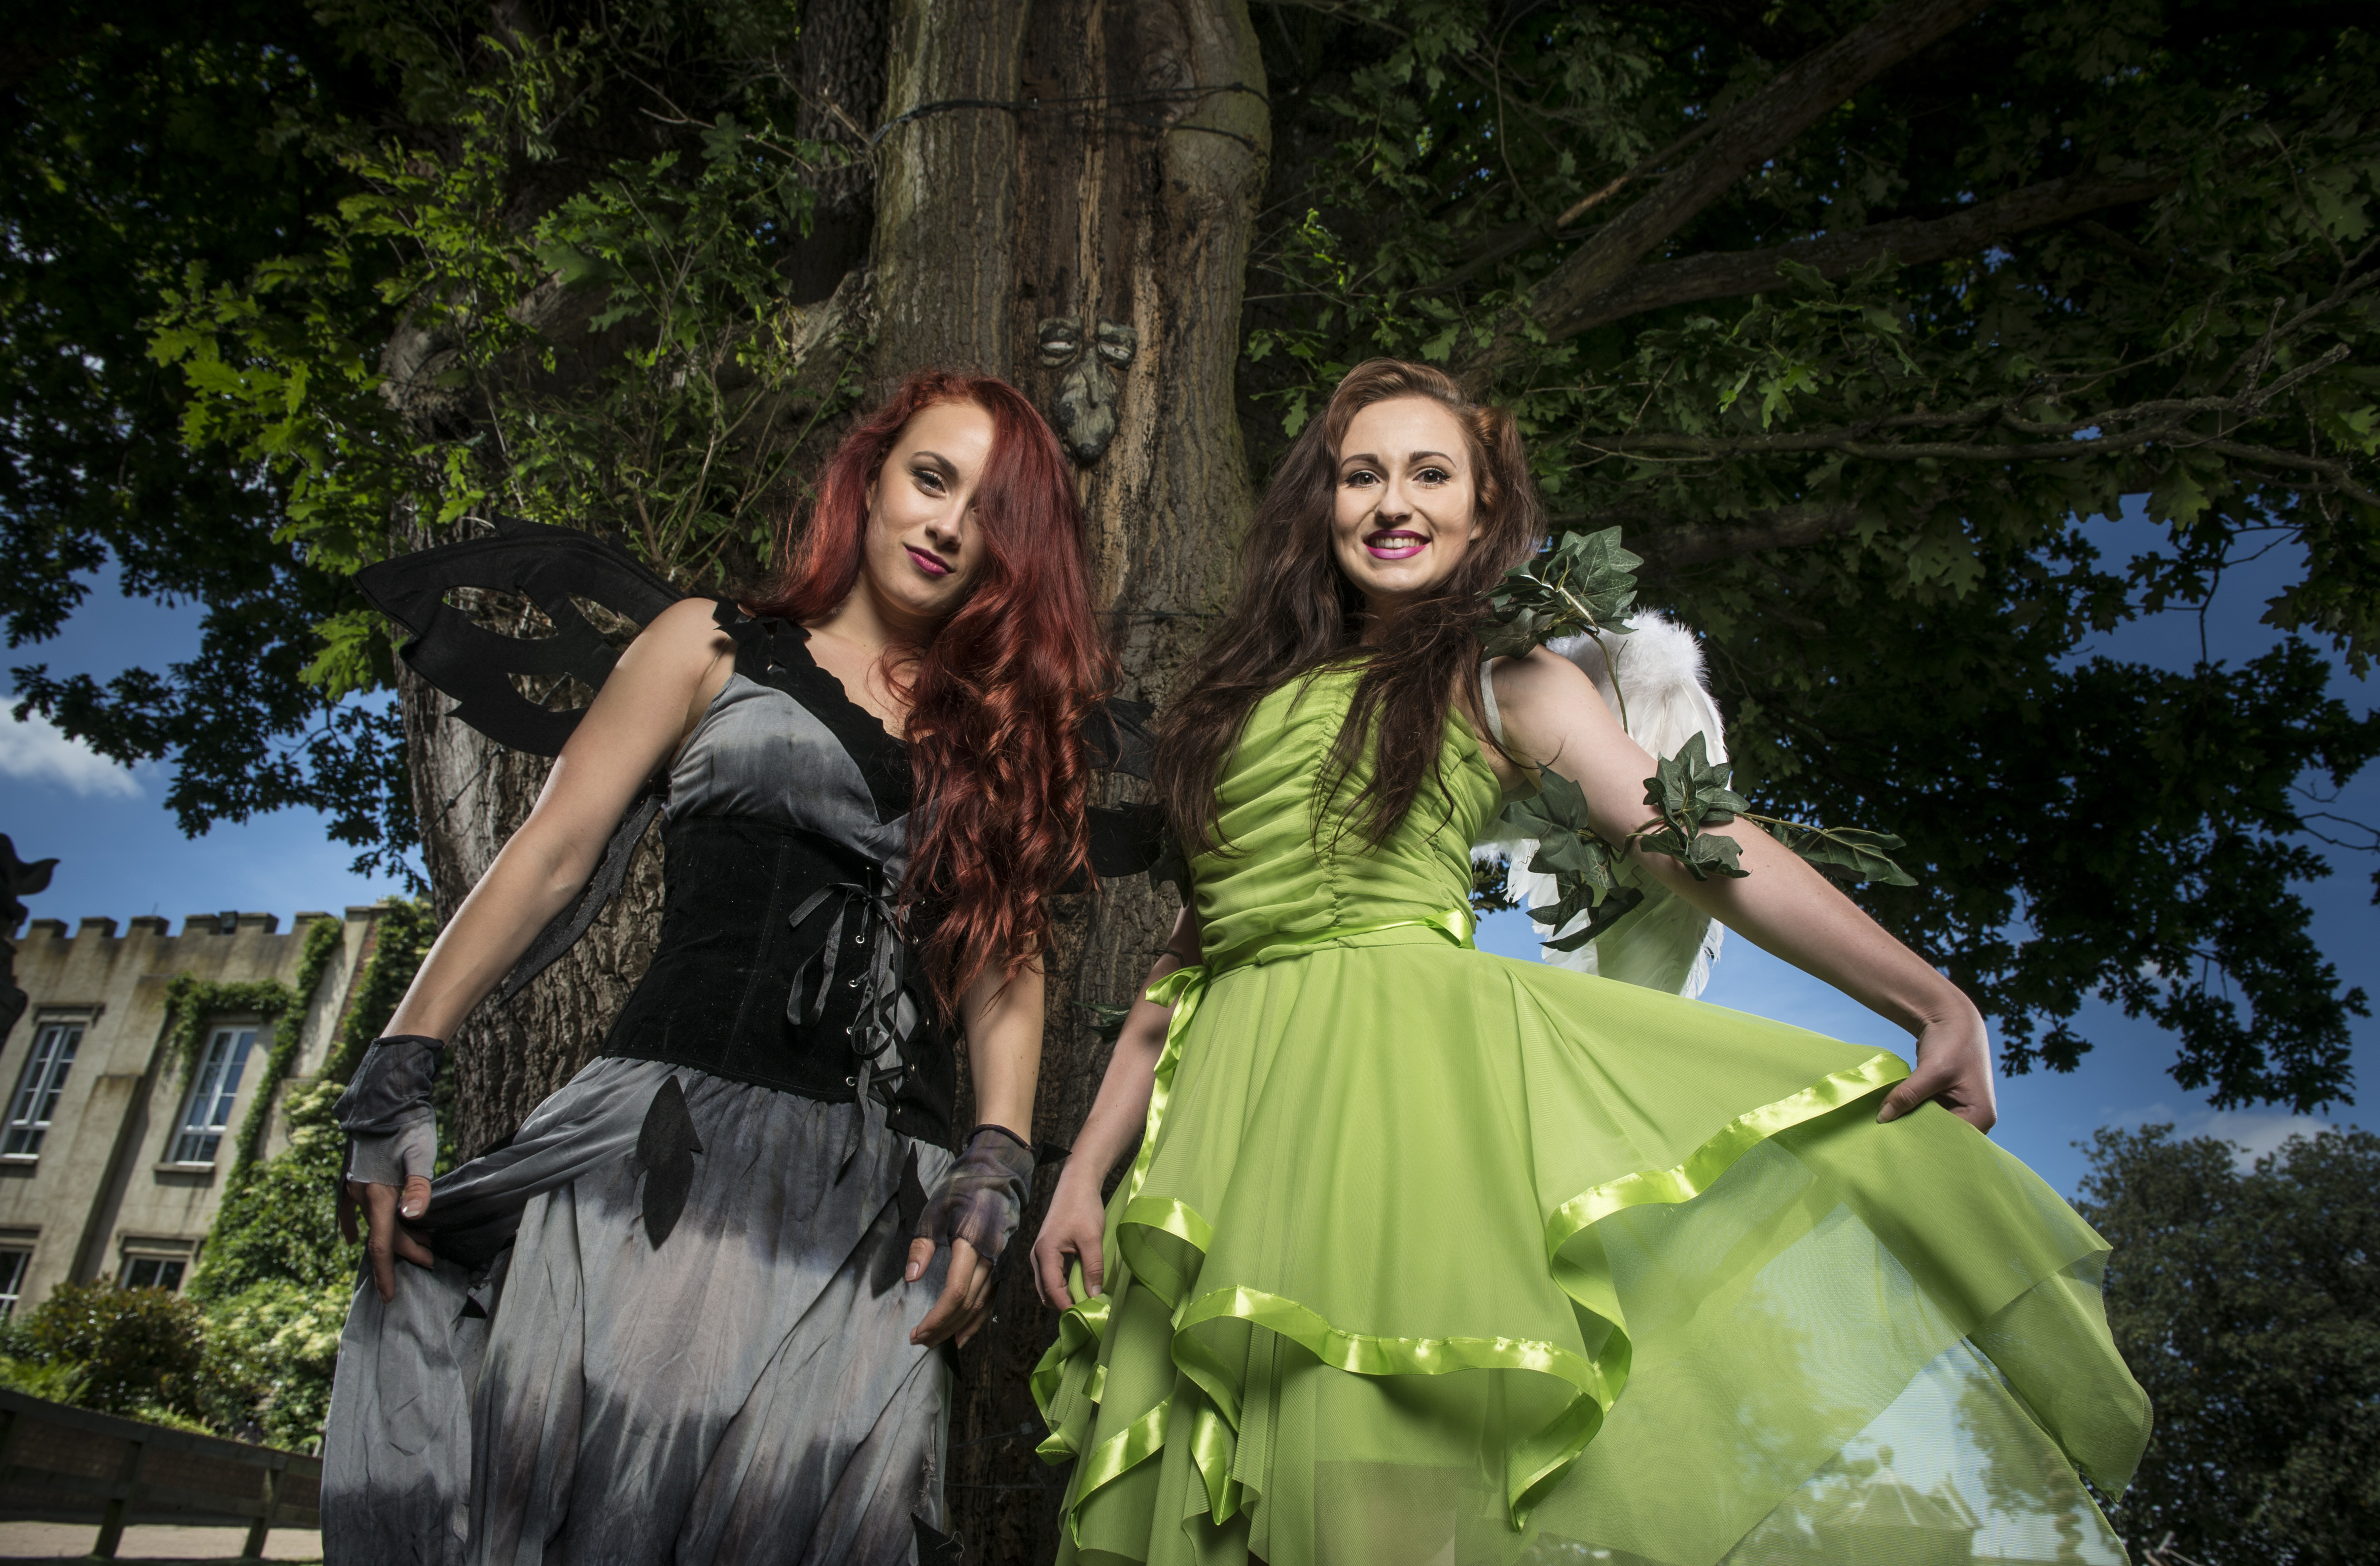 The Fairies are in the woods at the Chessington Howloween!